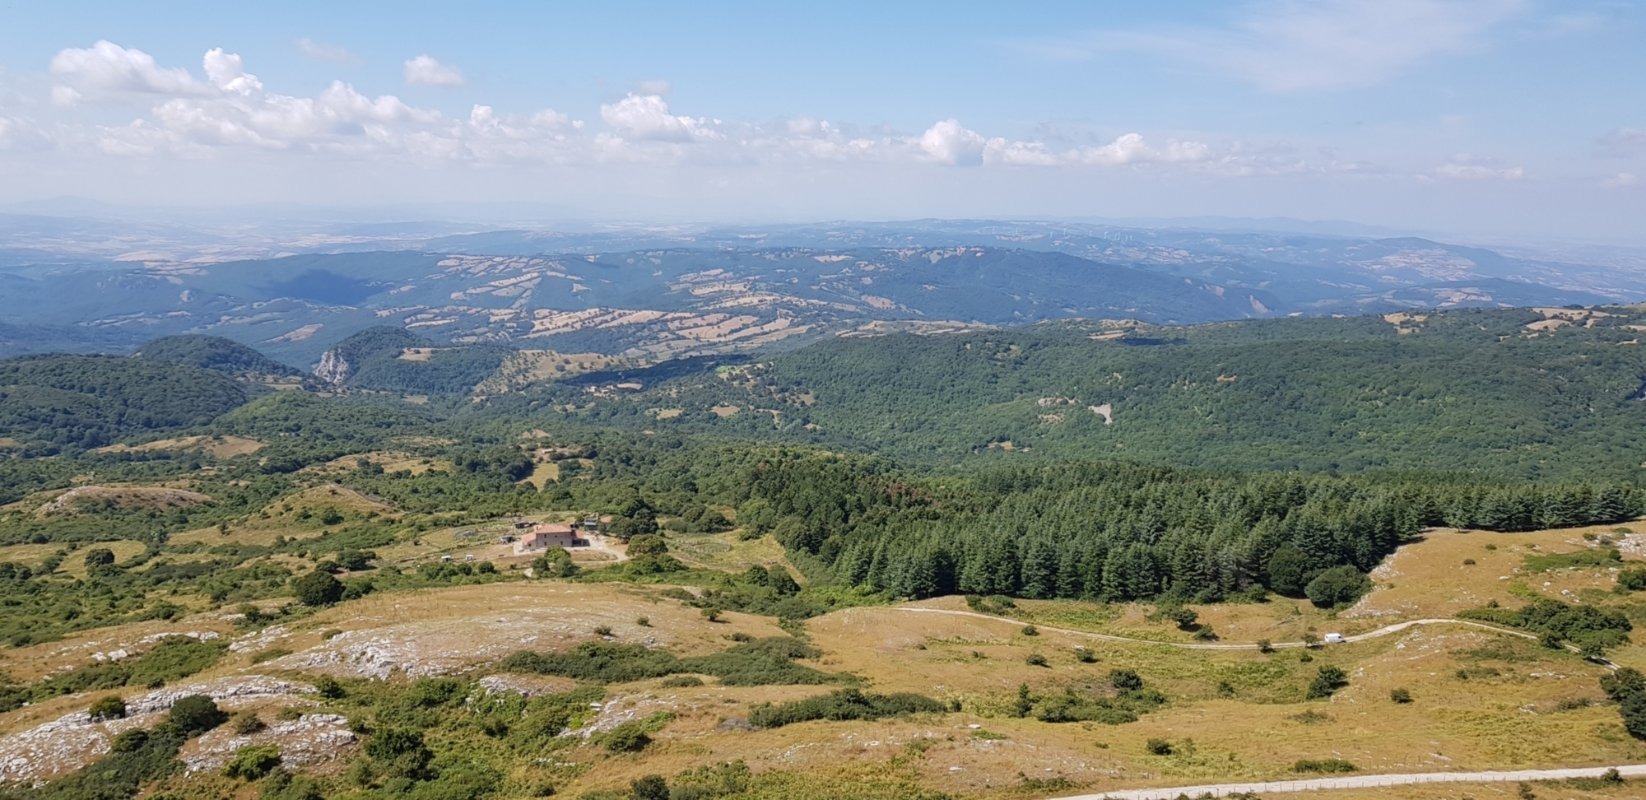 The view from Monte Labbro, Arcidosso